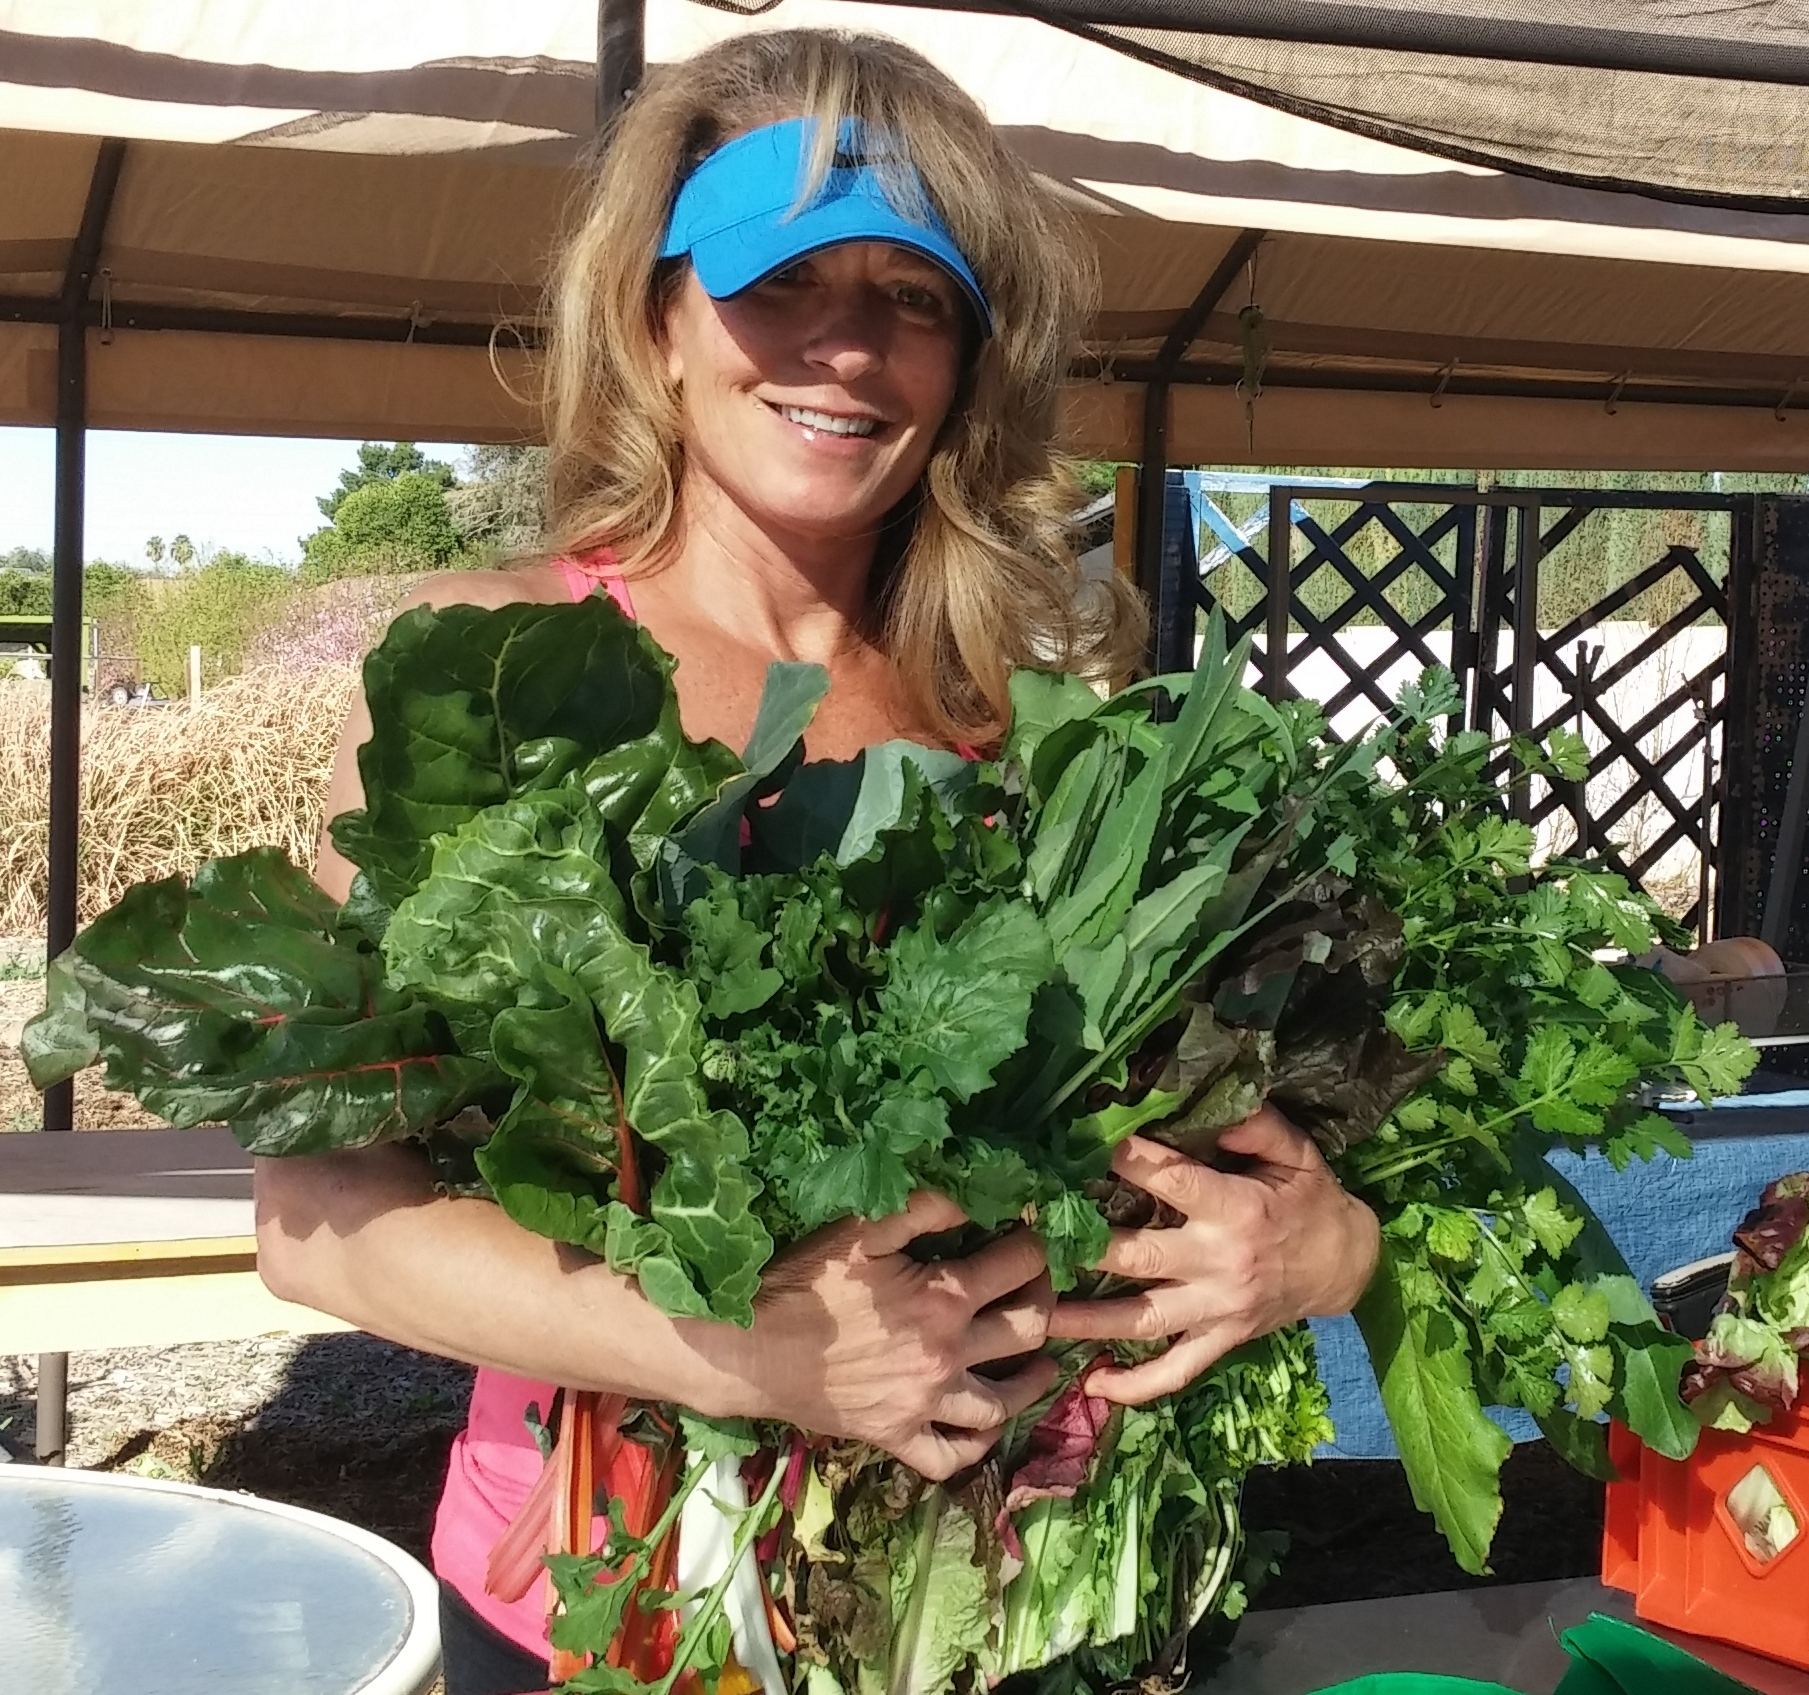 Leafy Greens to Make a Healthy Salad - Paula Owens, MS Holistic Nutritionist and Functional Health Practitioner